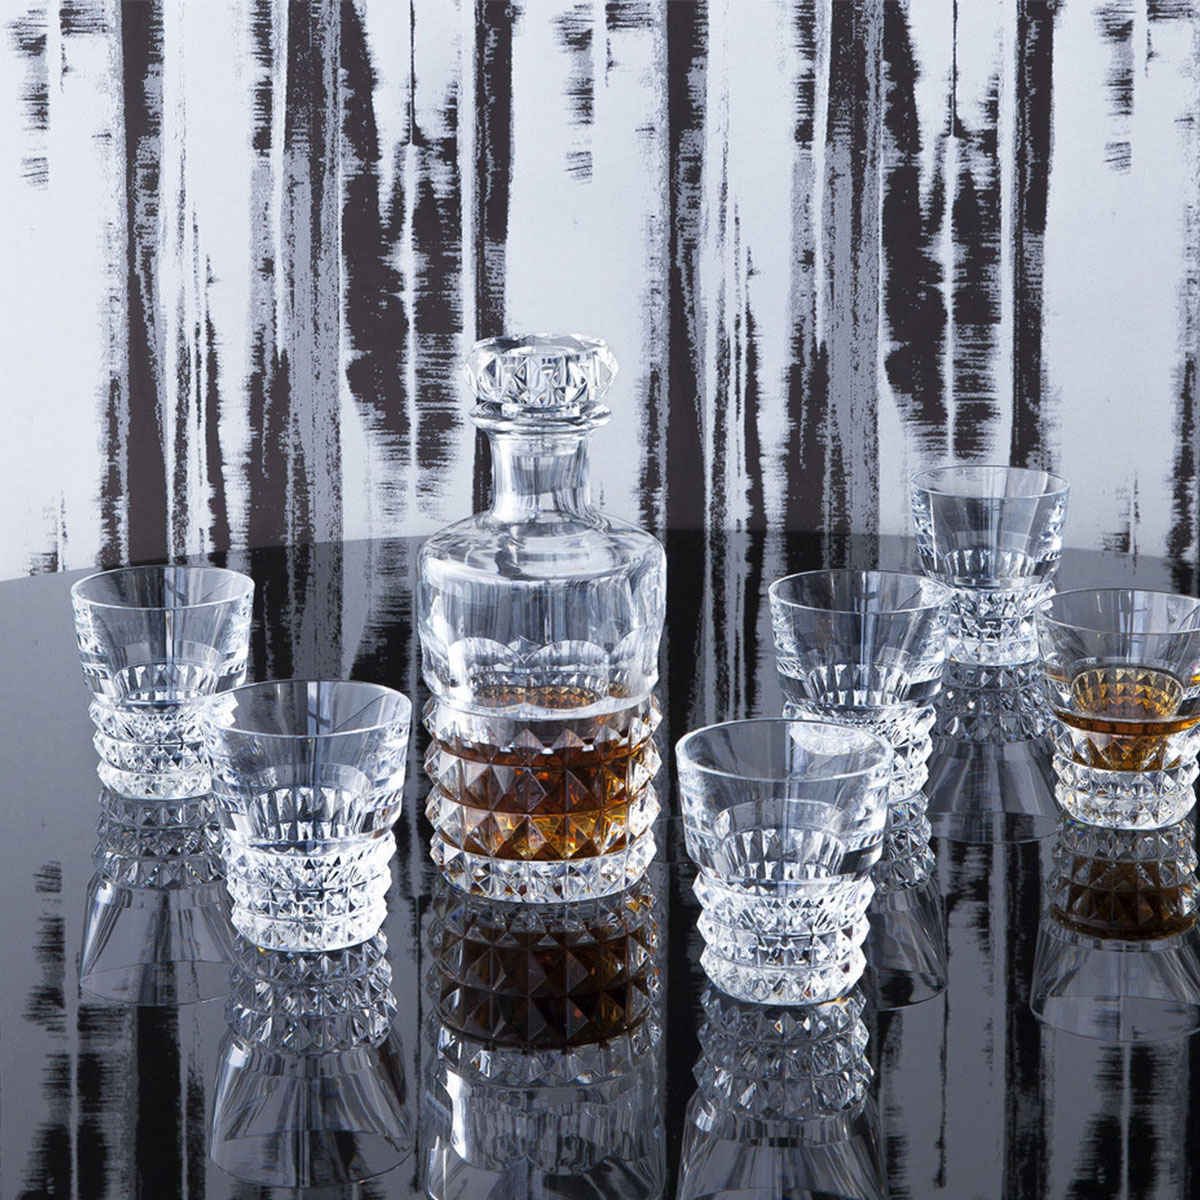 Baccarat Crystal, Louxor Whiskey Bar Crystal Glasses Set, Limited Edition of 2,000